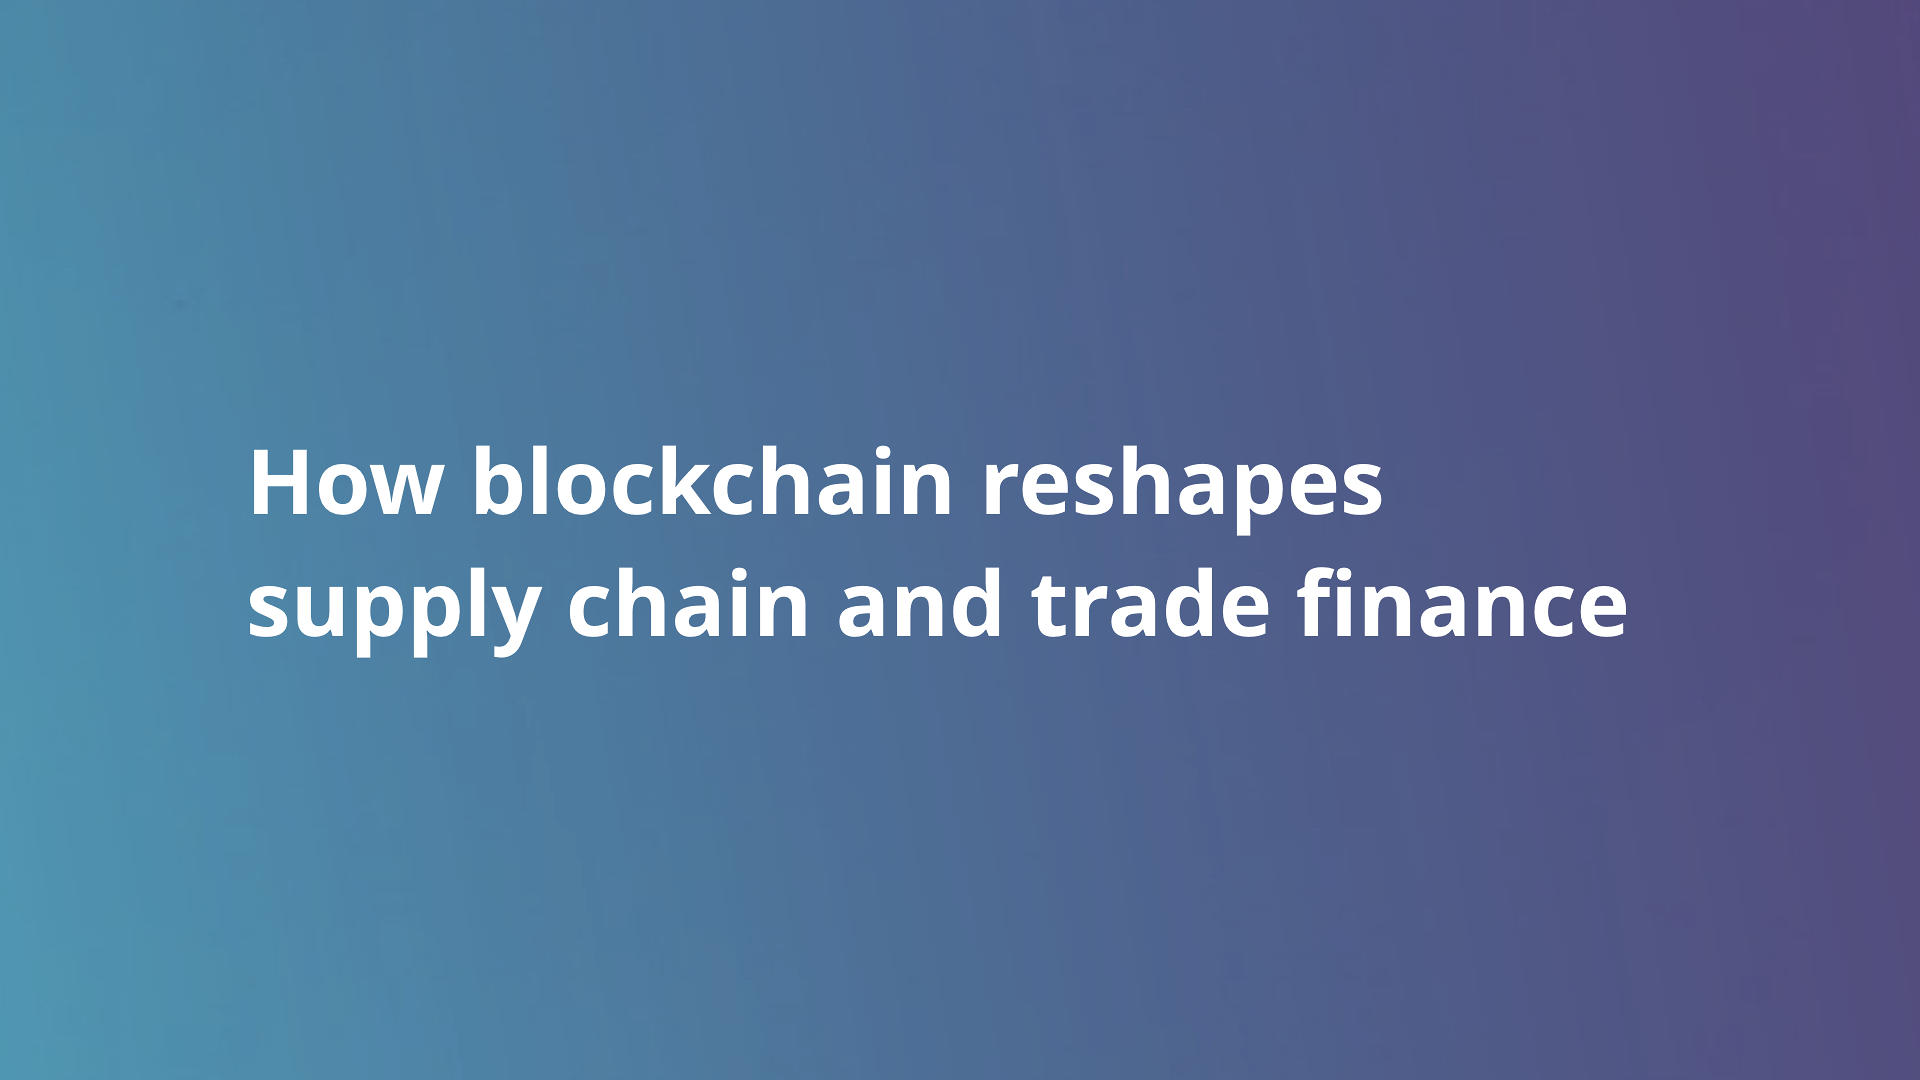 How blockchain reshapes supply chain and trade finance